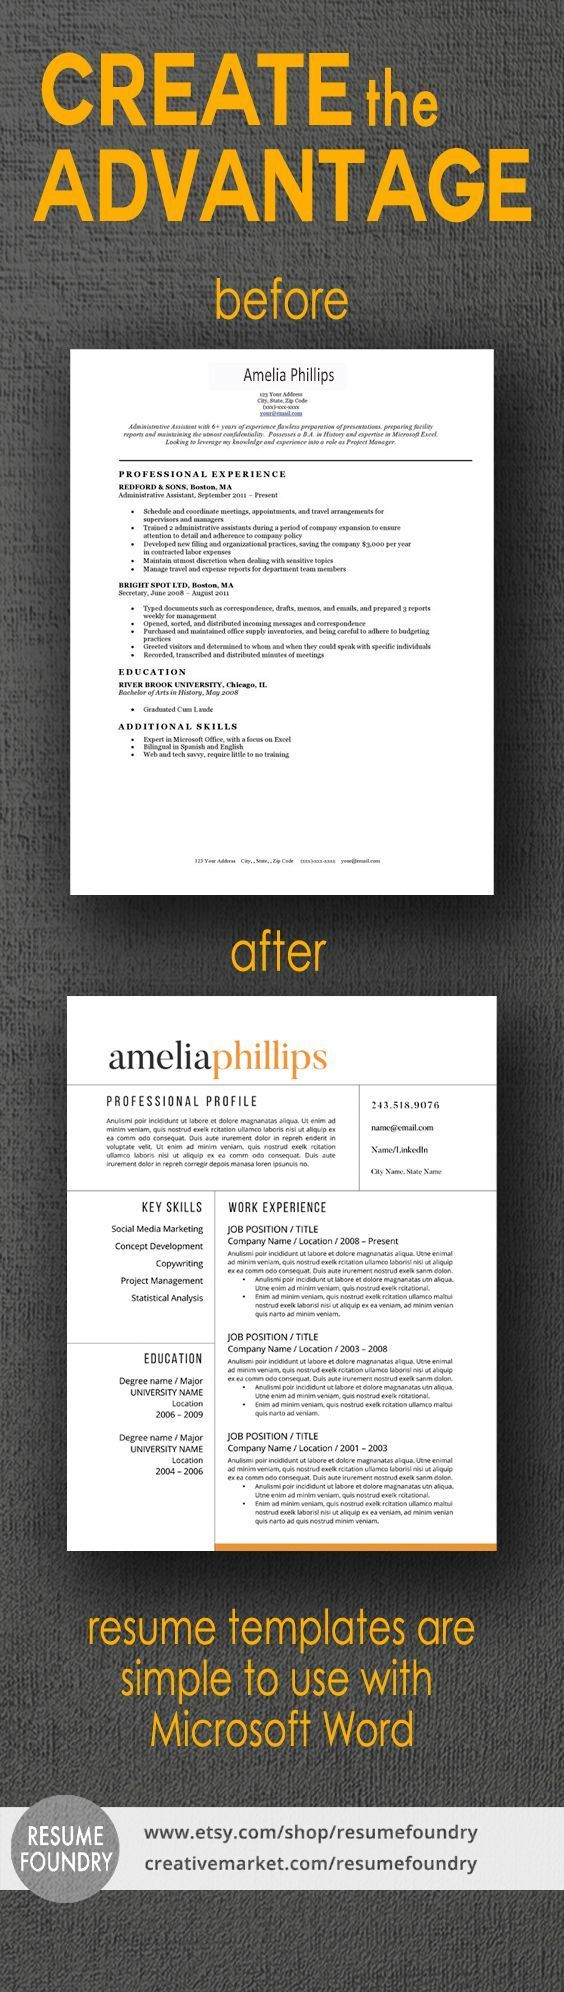 mental health counselor resume%0A Give yourself the advantage with a resume that has